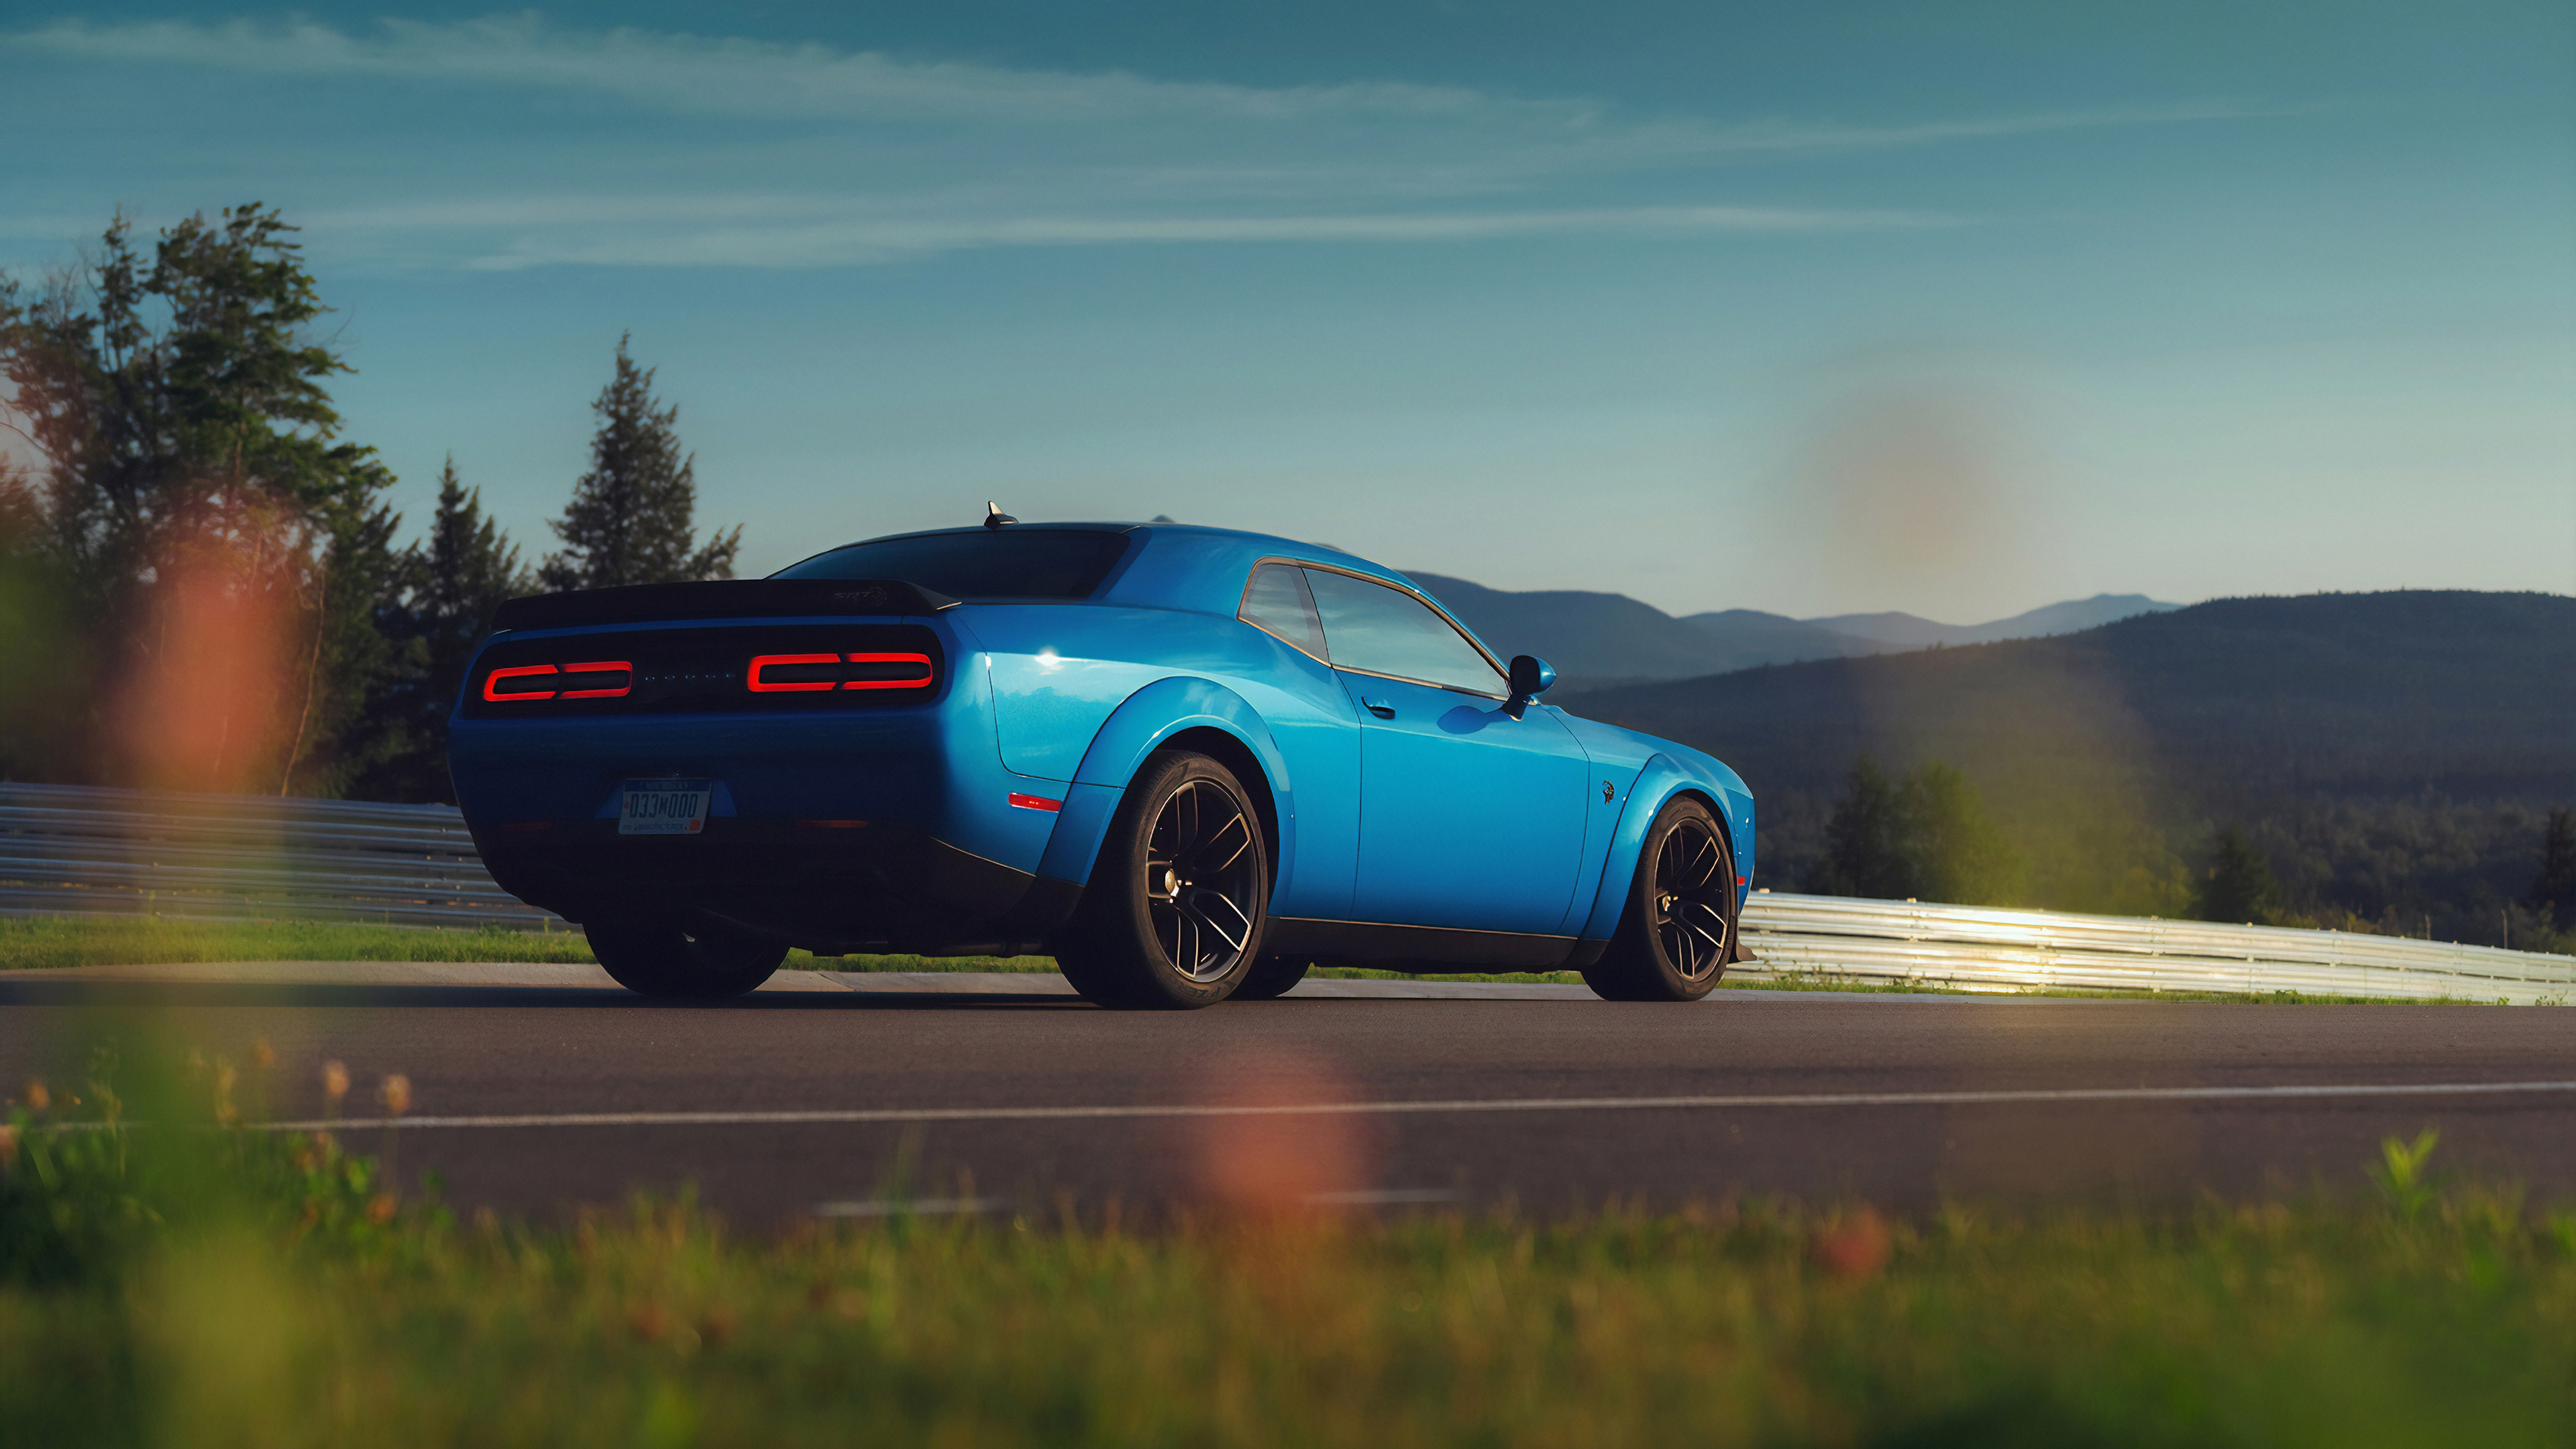 dodge challenger srt hellcat redeye in portland webb bland 1565054852 - Dodge Challenger SRT Hellcat Redeye In Portland Webb Bland - hd-wallpapers, dodge challenger wallpapers, dodge challenger srt hellcat widebody wallpapers, behance wallpapers, 4k-wallpapers, 2019 cars wallpapers